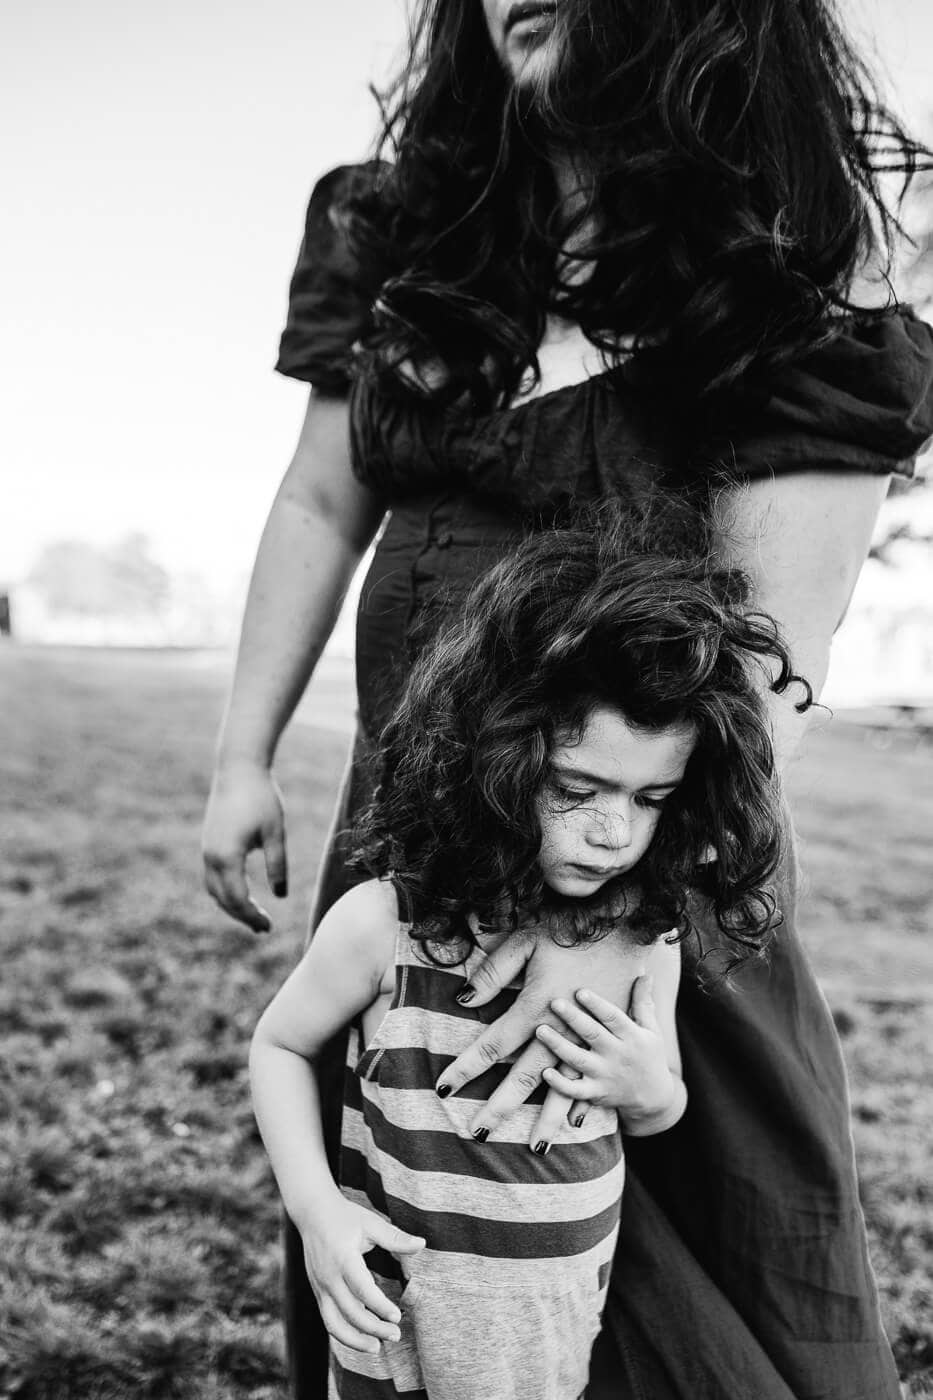 Black & white portrait of mom and son with long hair blowing in the wind and her hand on his chest